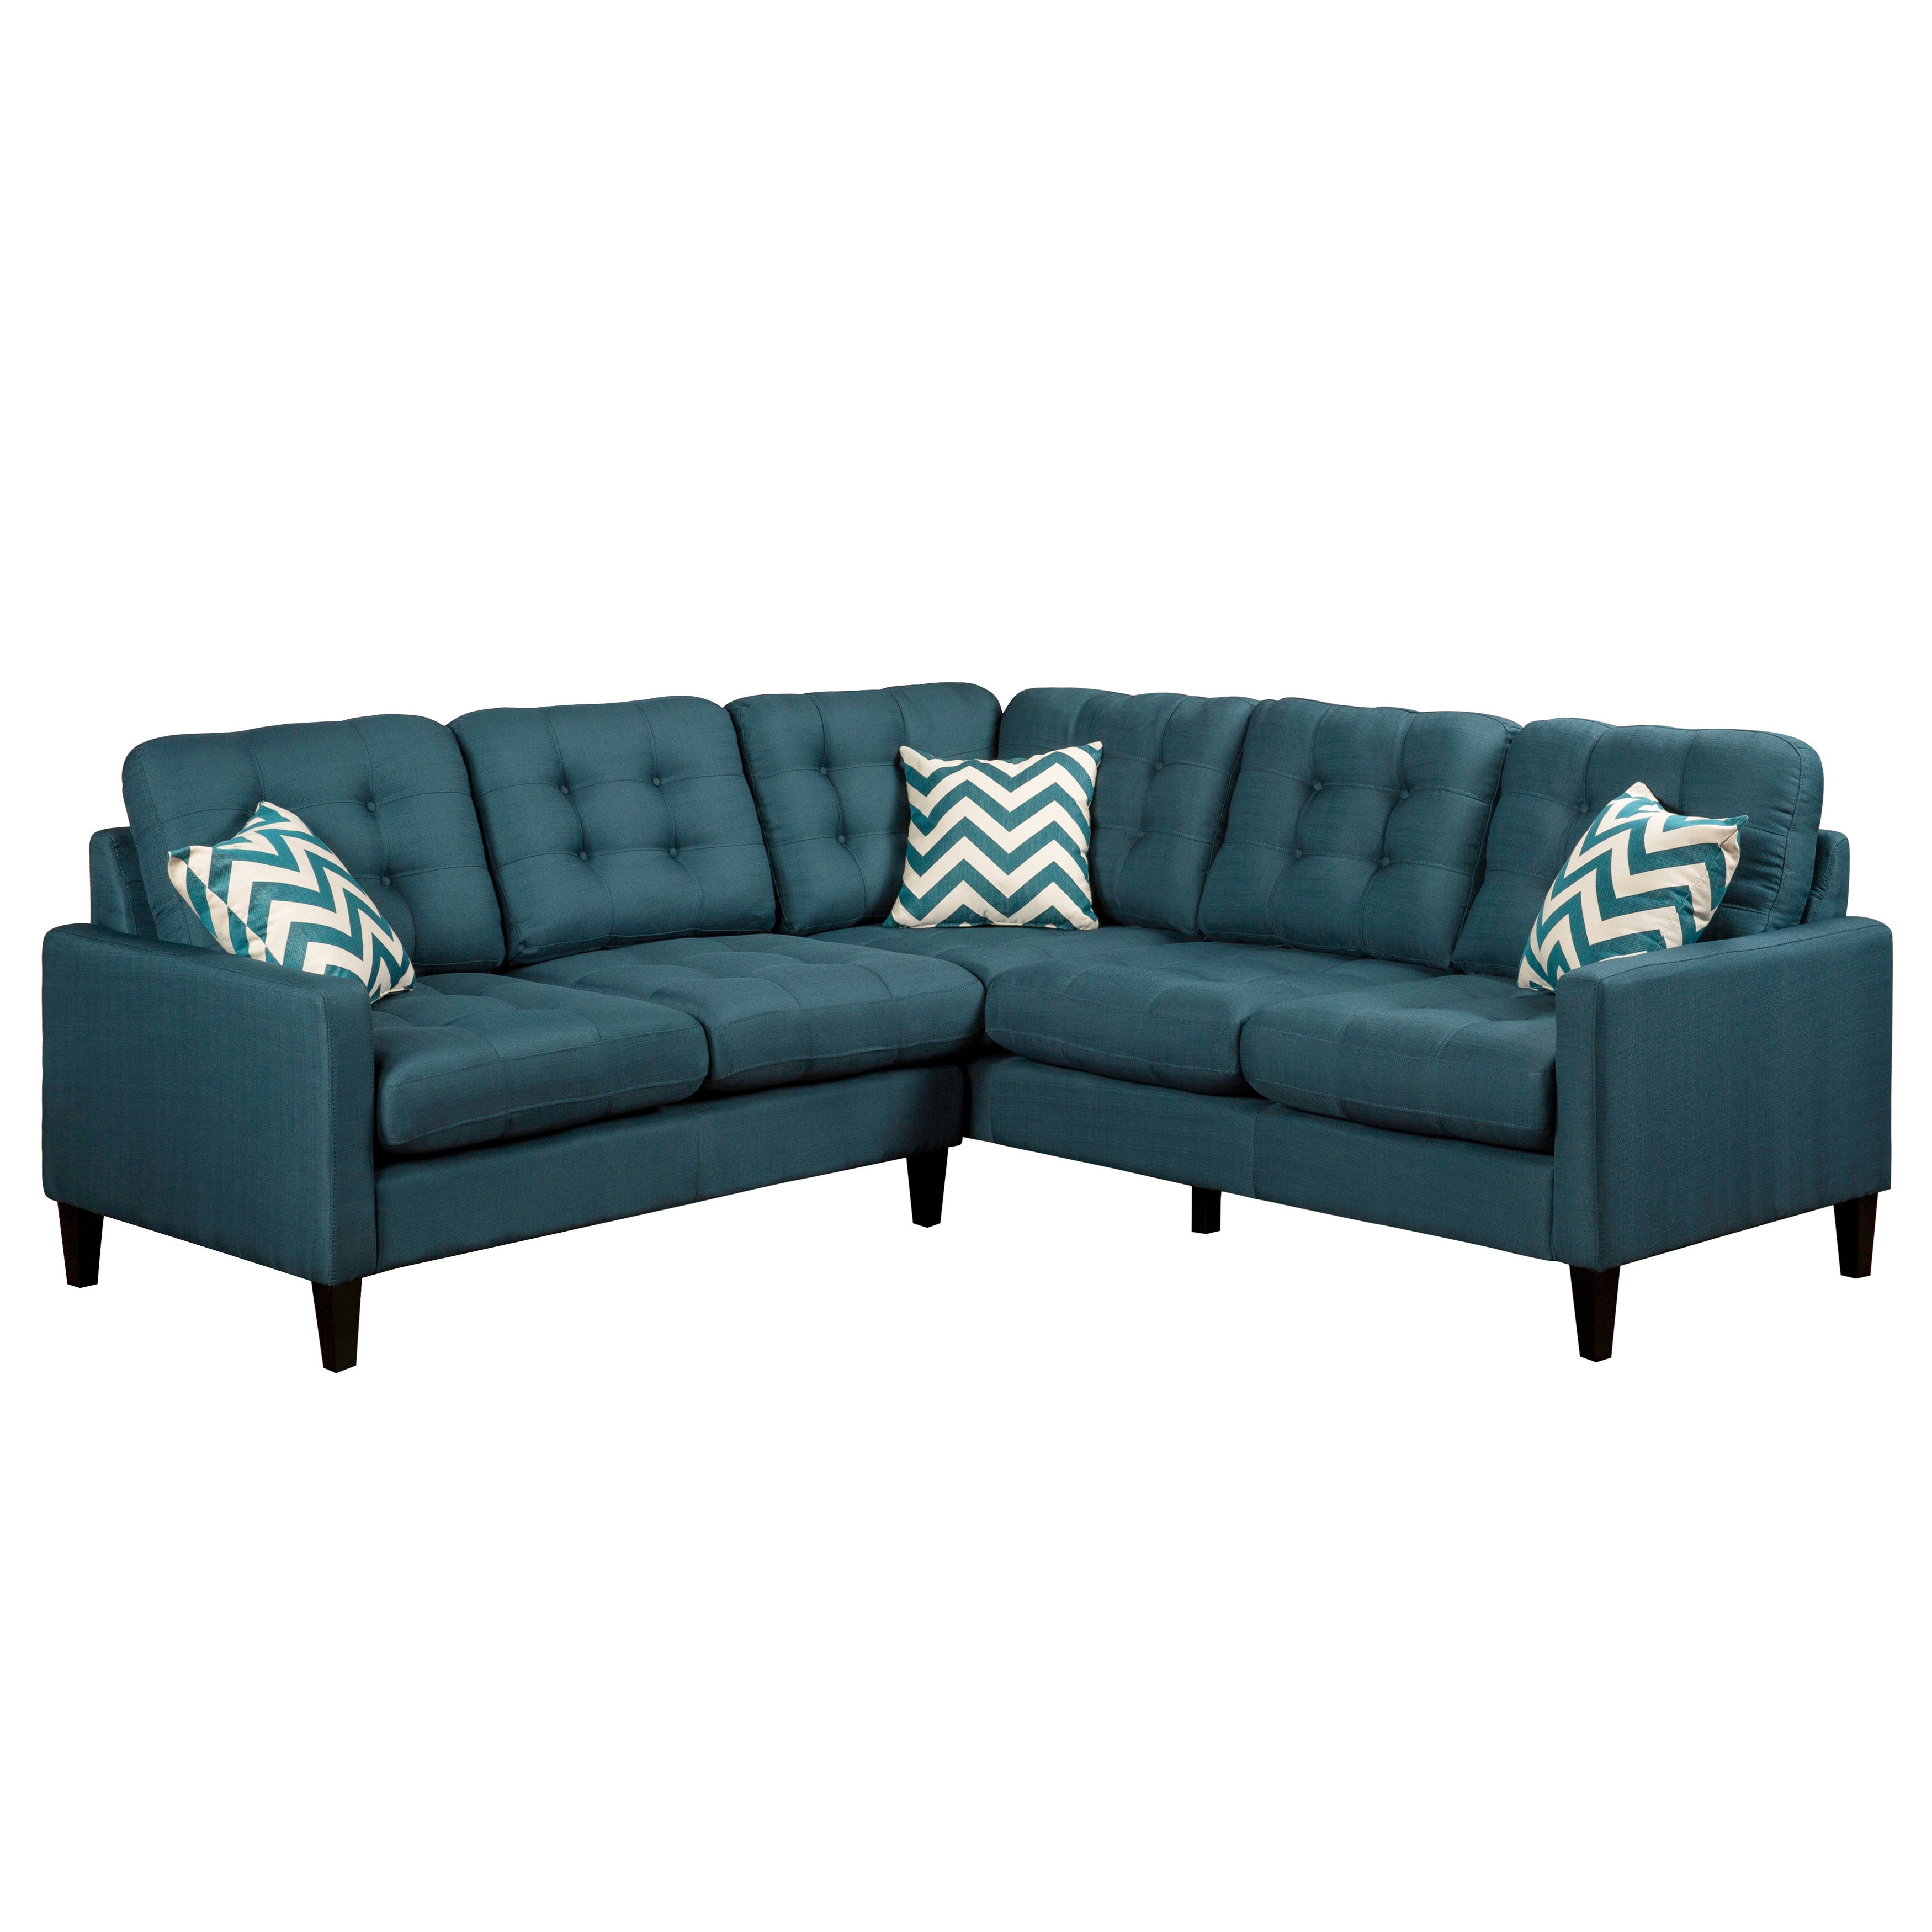 Shop porter harlow deep teal sectional sofa with woven accent pillows free shipping today overstock com 11089805